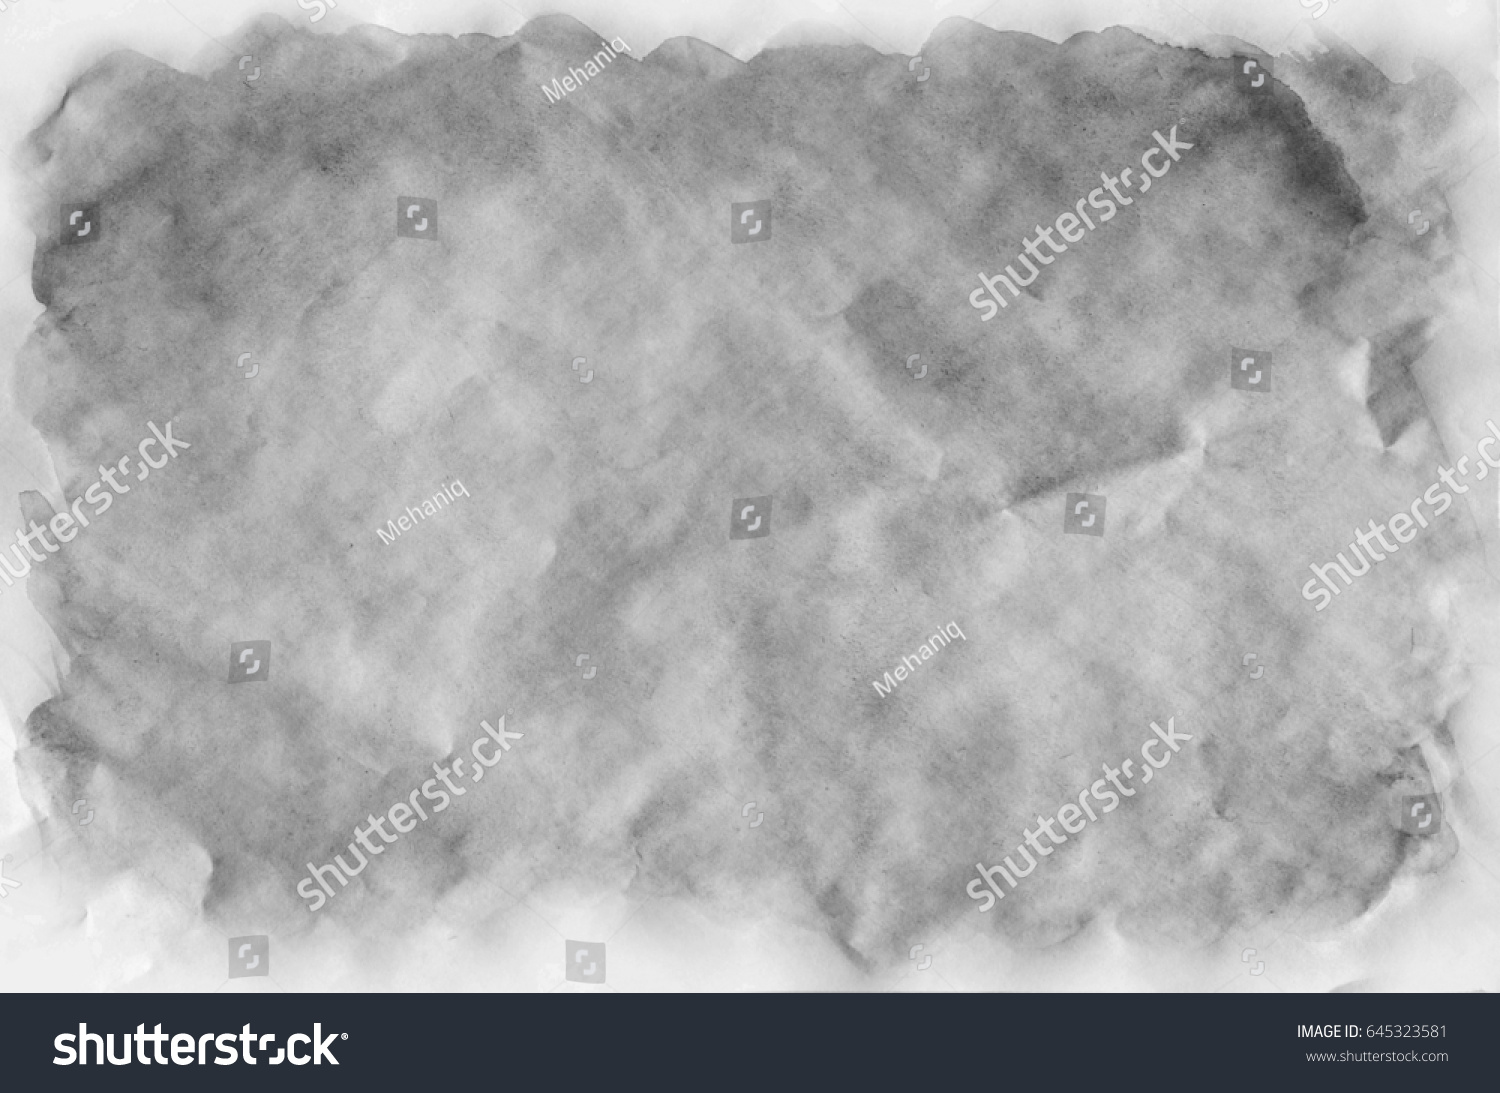 Beautiful Wallpaper Grey Watercolor - stock-photo-dark-grey-watercolor-background-for-wallpaper-aquarelle-color-illustration-645323581  Photograph_7862100.jpg